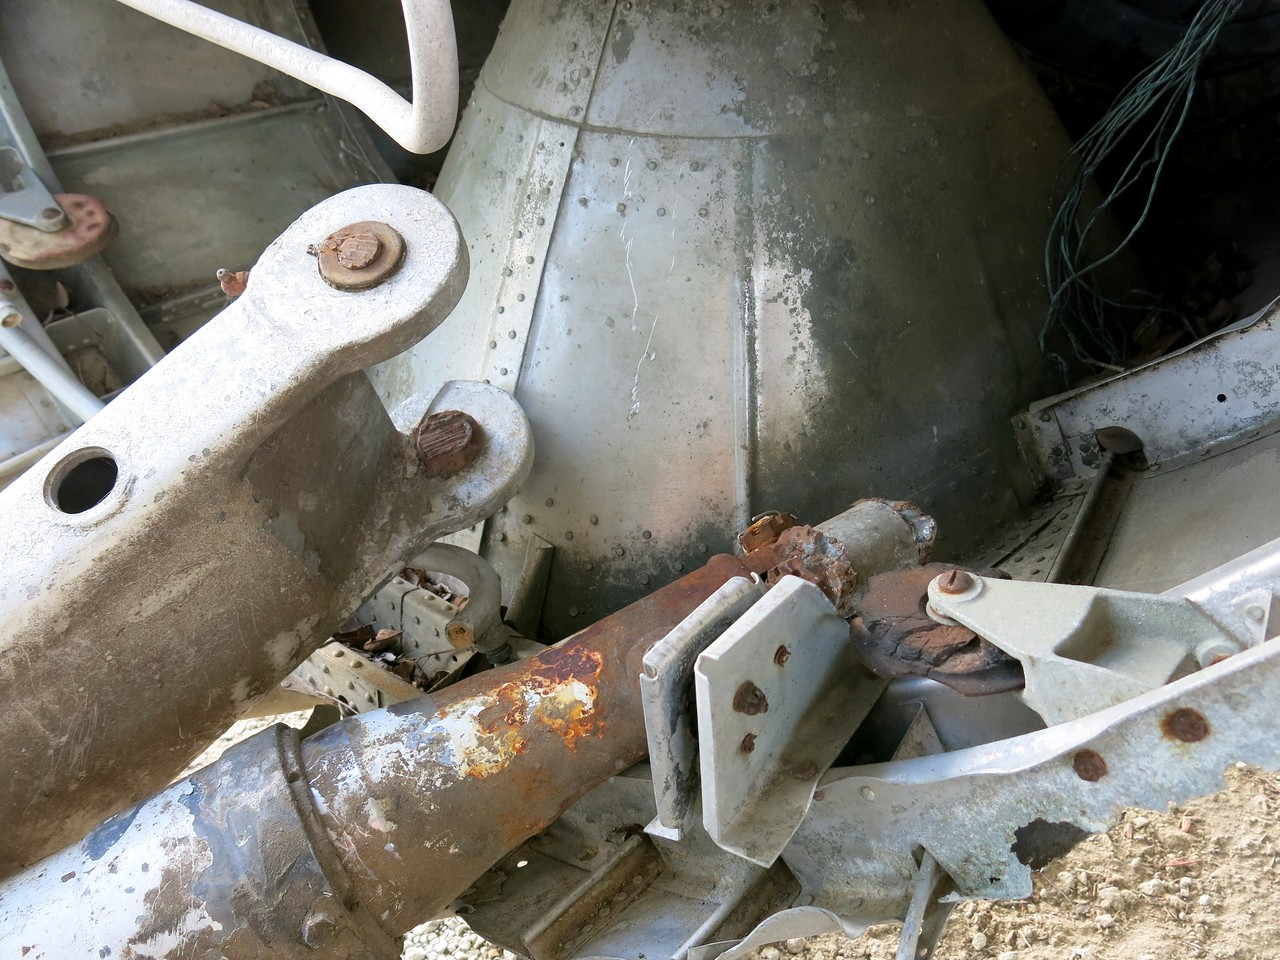 After the accident, the tailwheel assembly was still attached and probably remained attached during the wreckage recovery. <br /> <br /> This photo shows the tailwheel attach points cut by a saw and torch. This was most likely done after the investigation was completed.